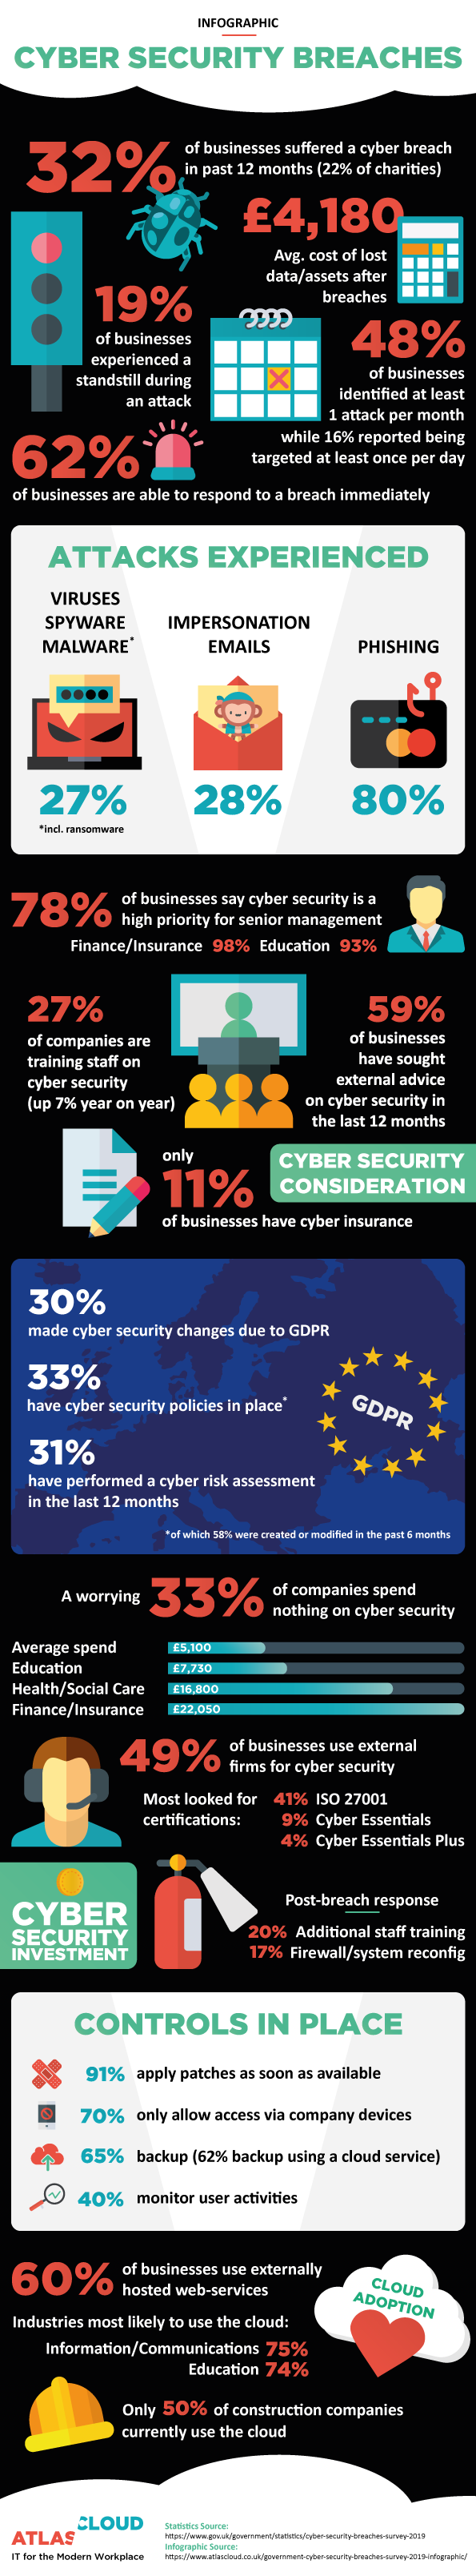 Cyber Security Breaches Survey 2019 Infographic